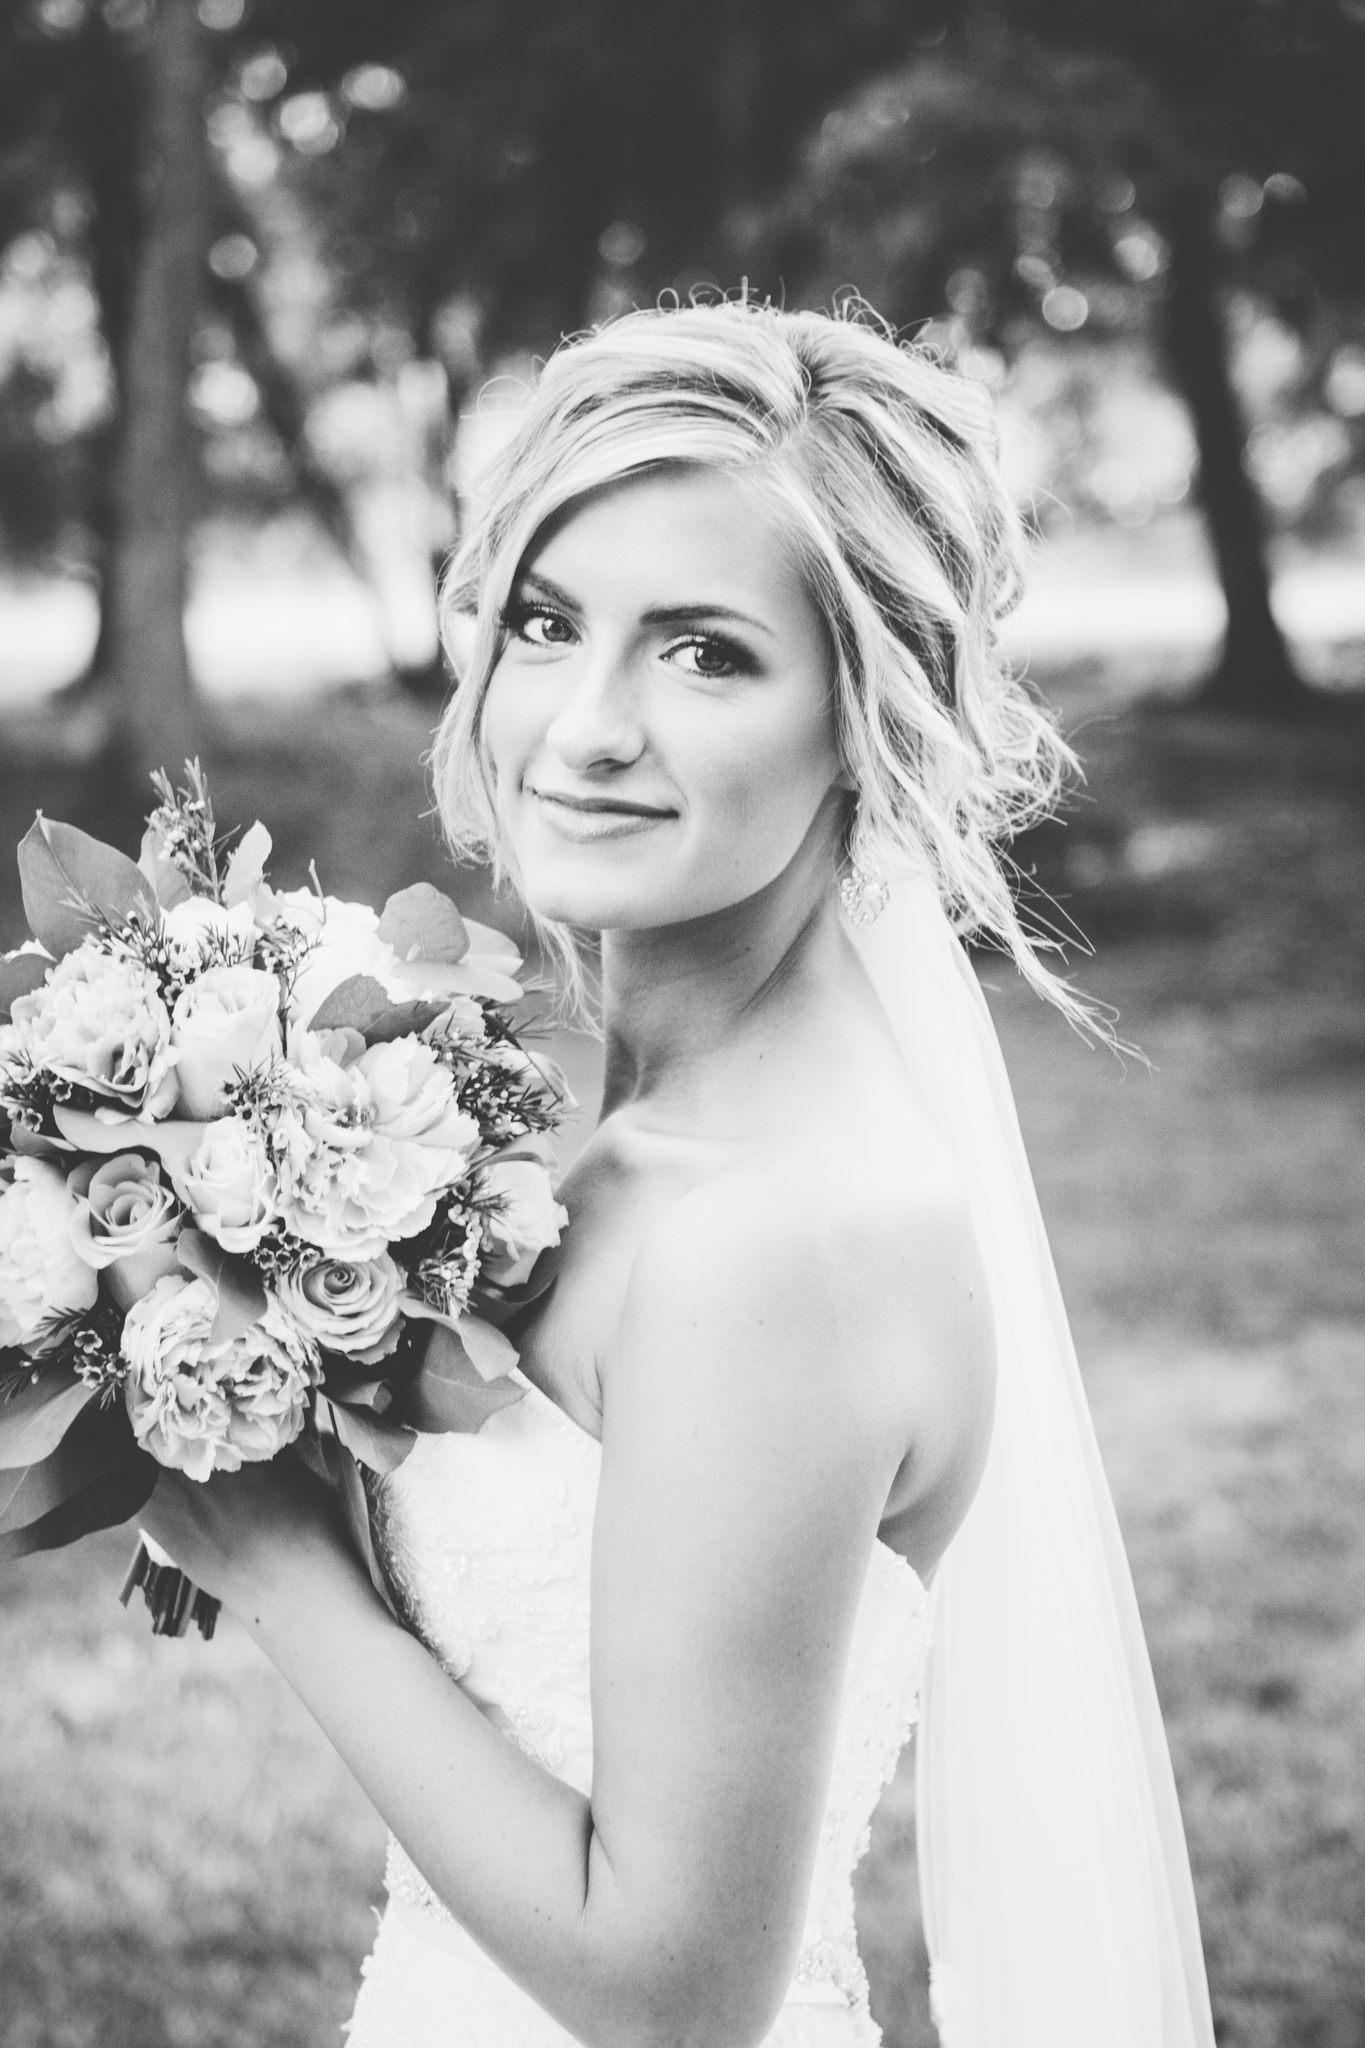 Bridal portrait. Josh + Alora | Classic Denham Springs Wedding. Photos by Christi Childs with The Picture People LA photography Baton Rouge, Louisiana